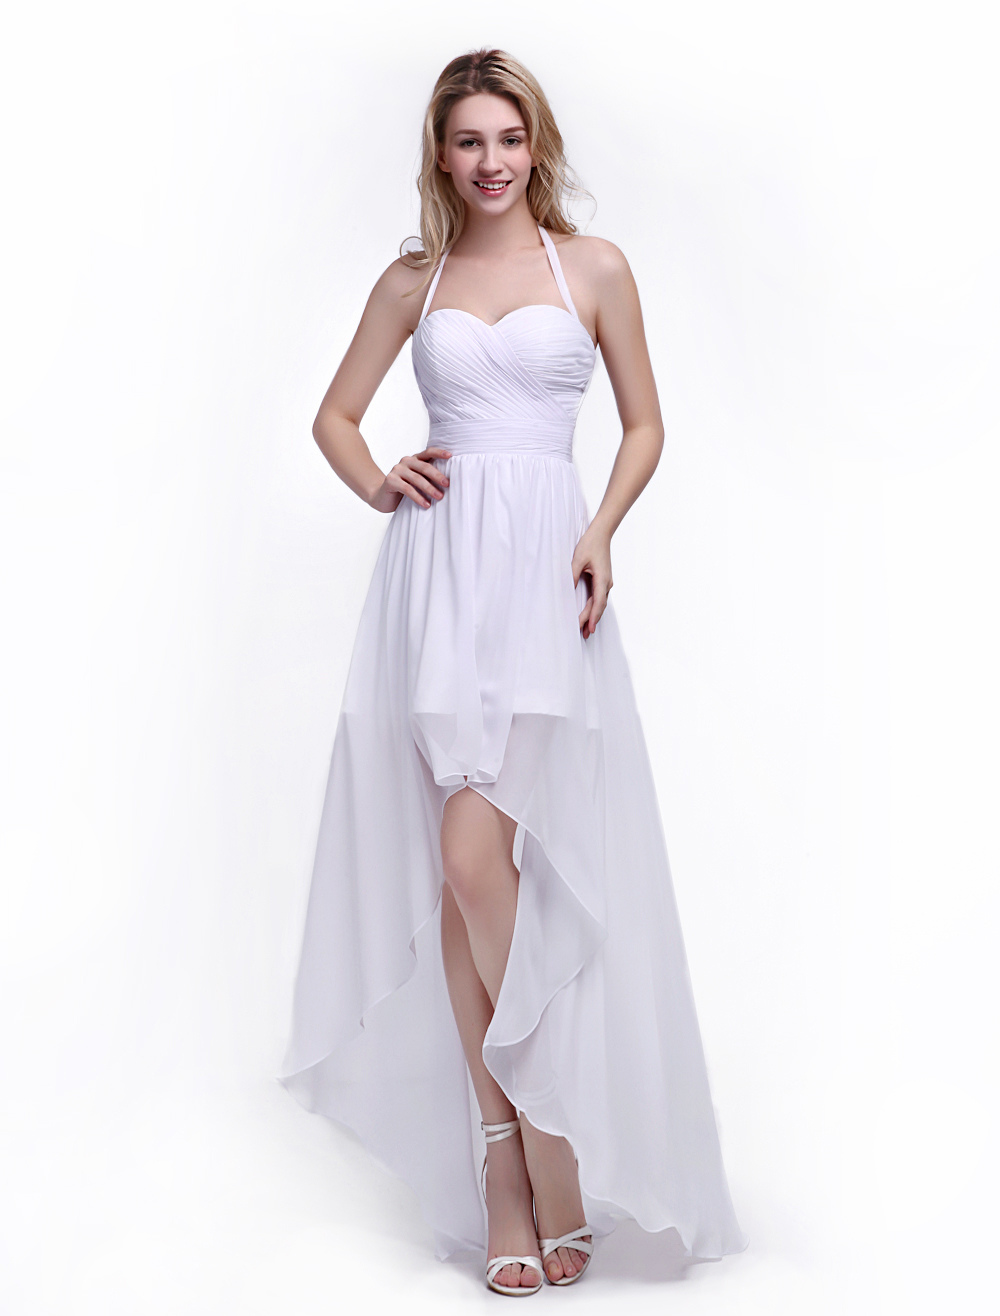 A-line Bridesmaid Dress with Halter Neck and Ruffles White Chiffon Skirt Milanoo